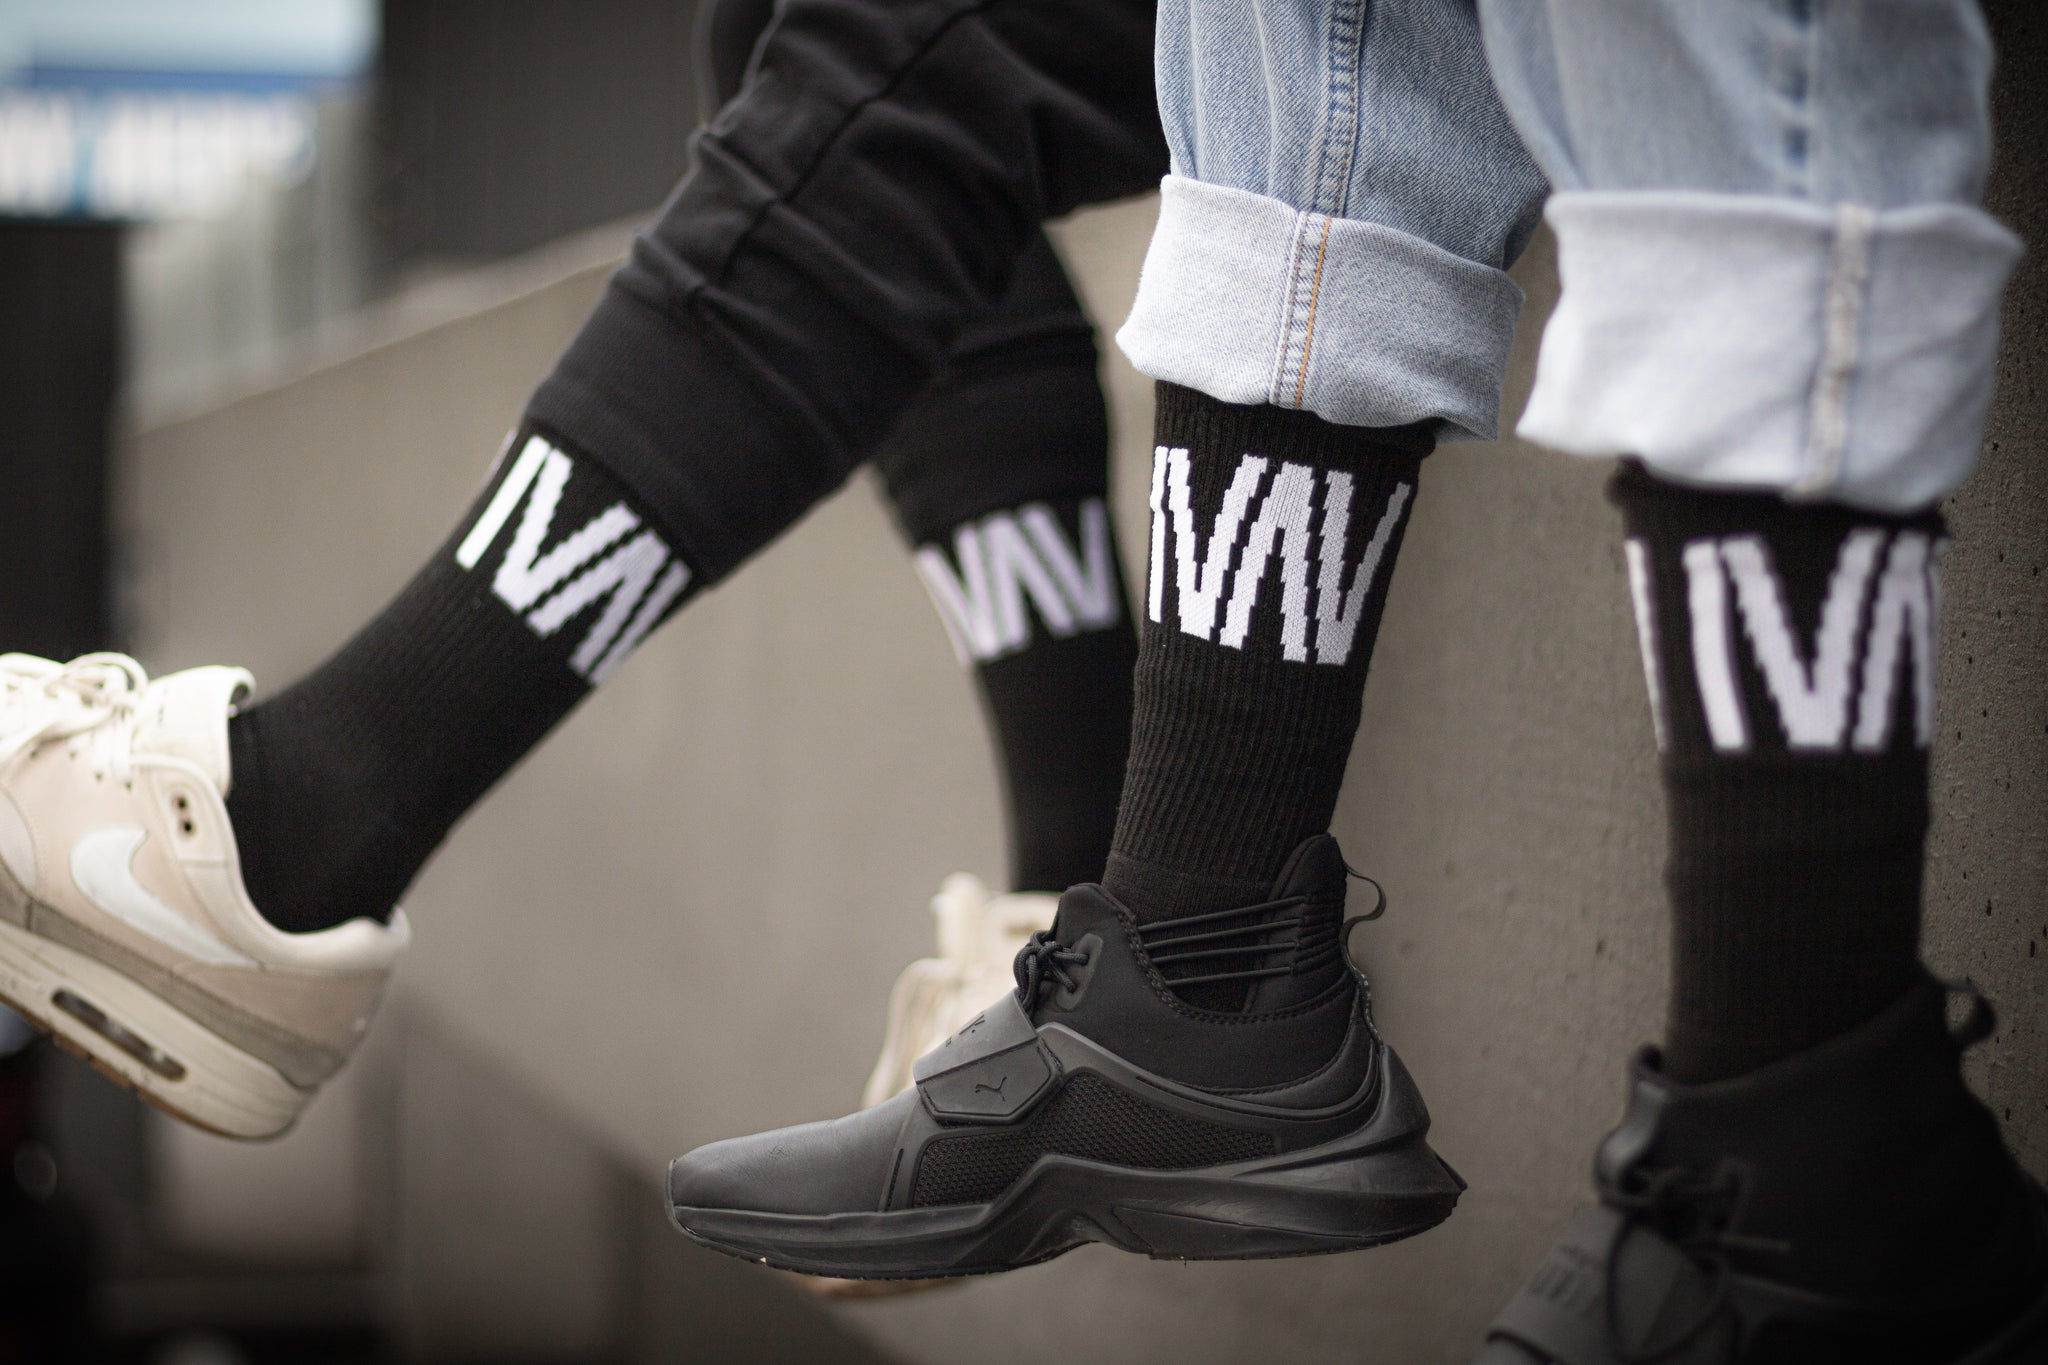 IVAV Black Socks